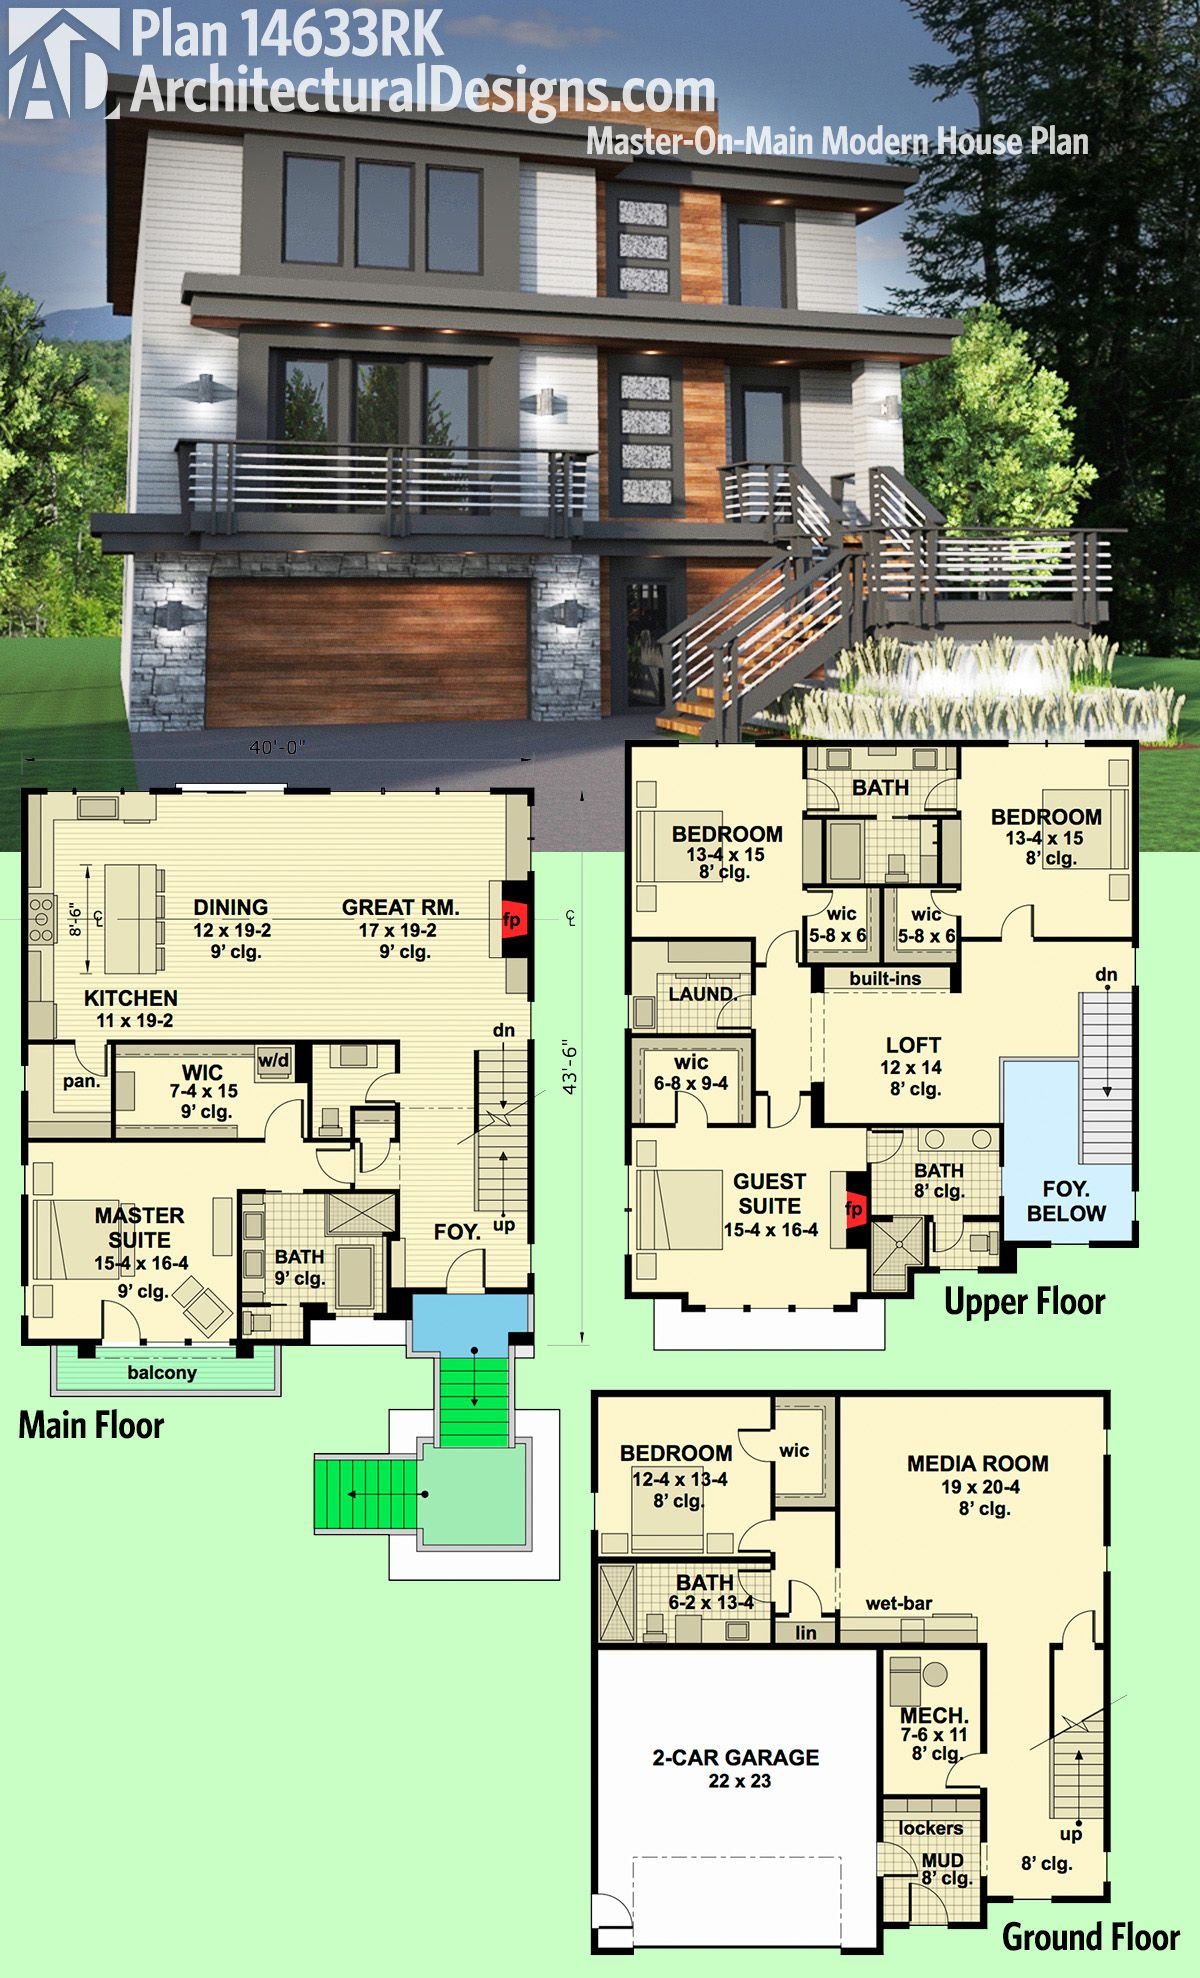 Plan 14633rk master on main modern house plan modern for Modern building plans